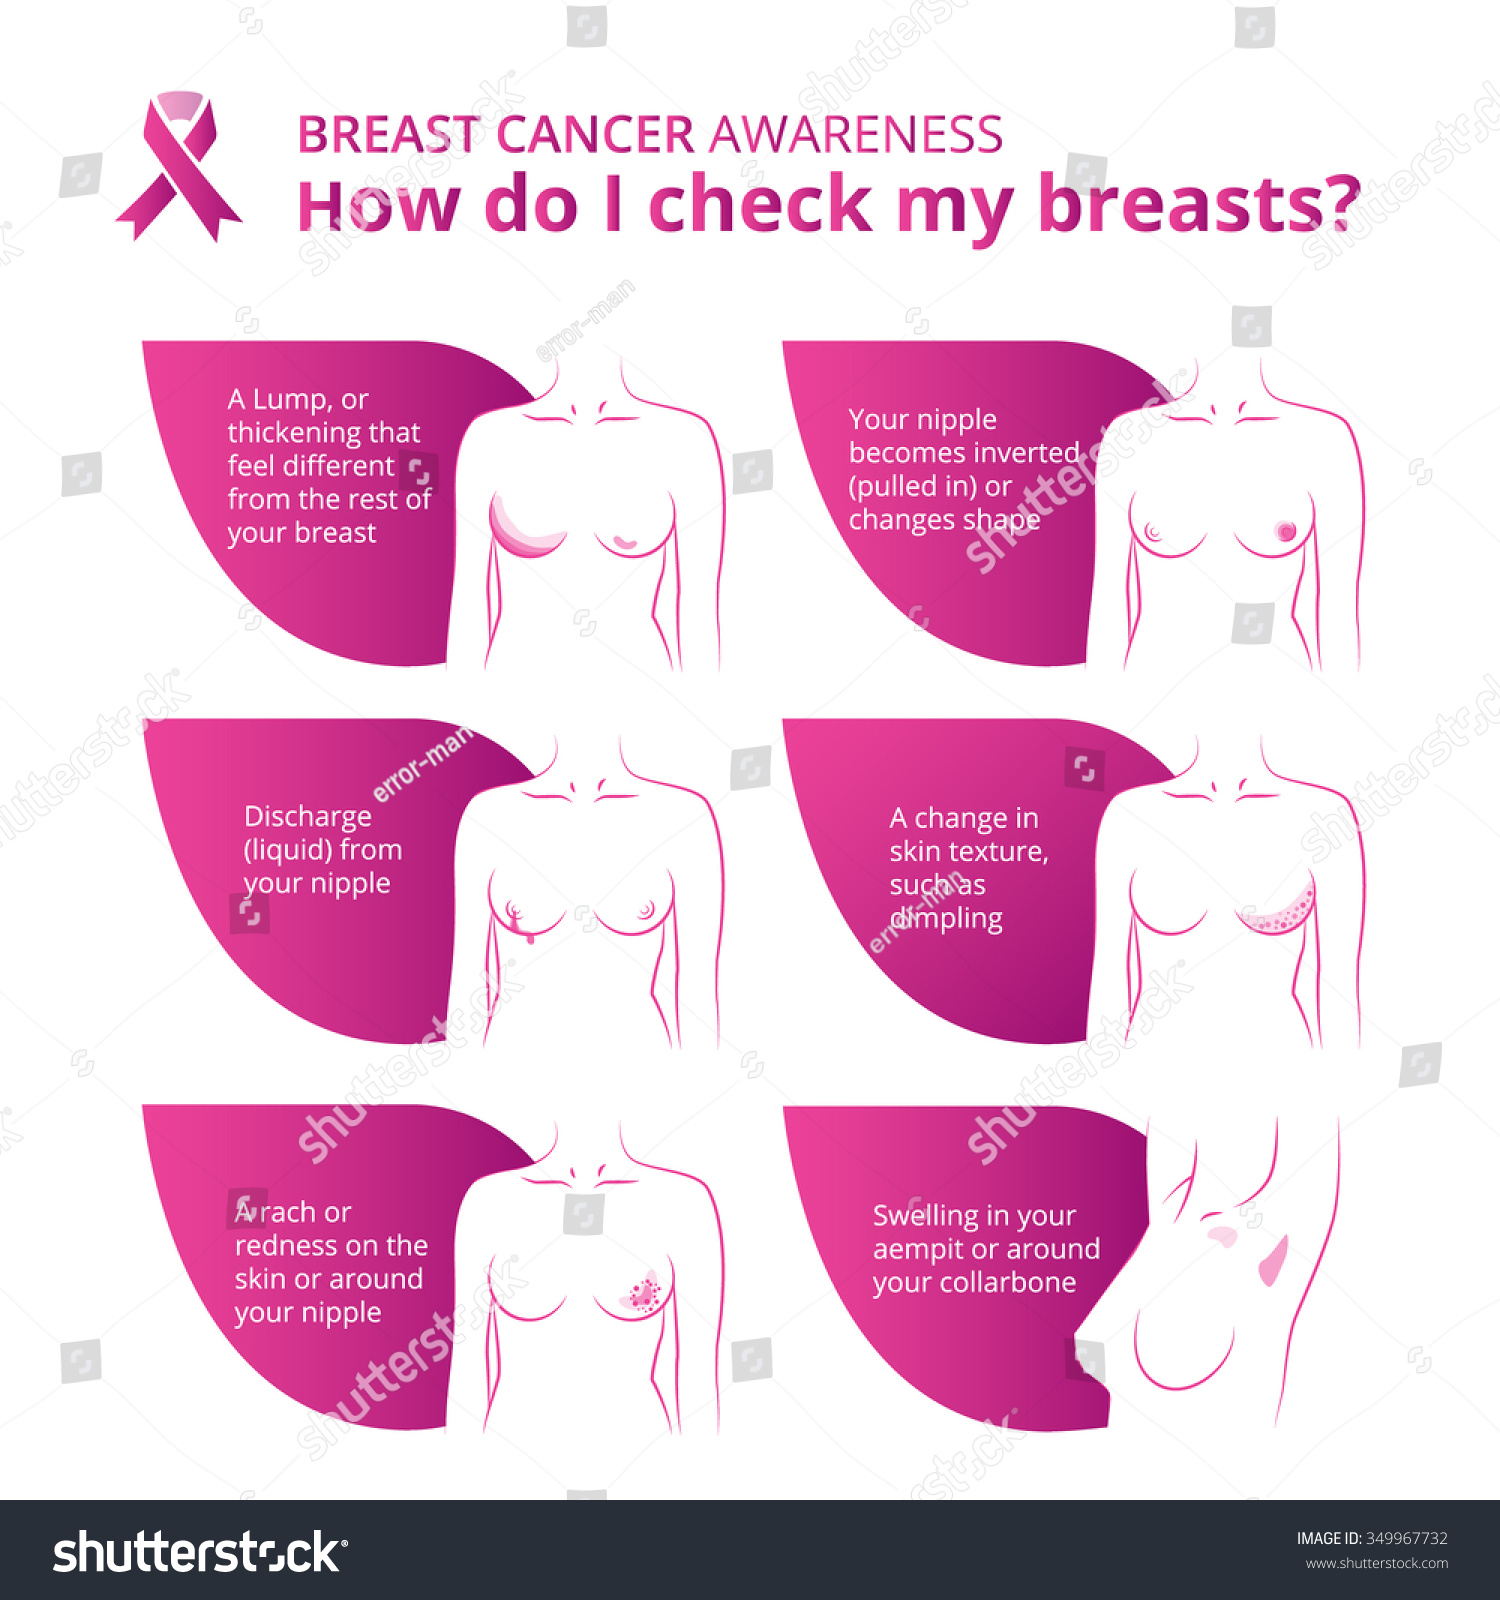 How to get breast cancer